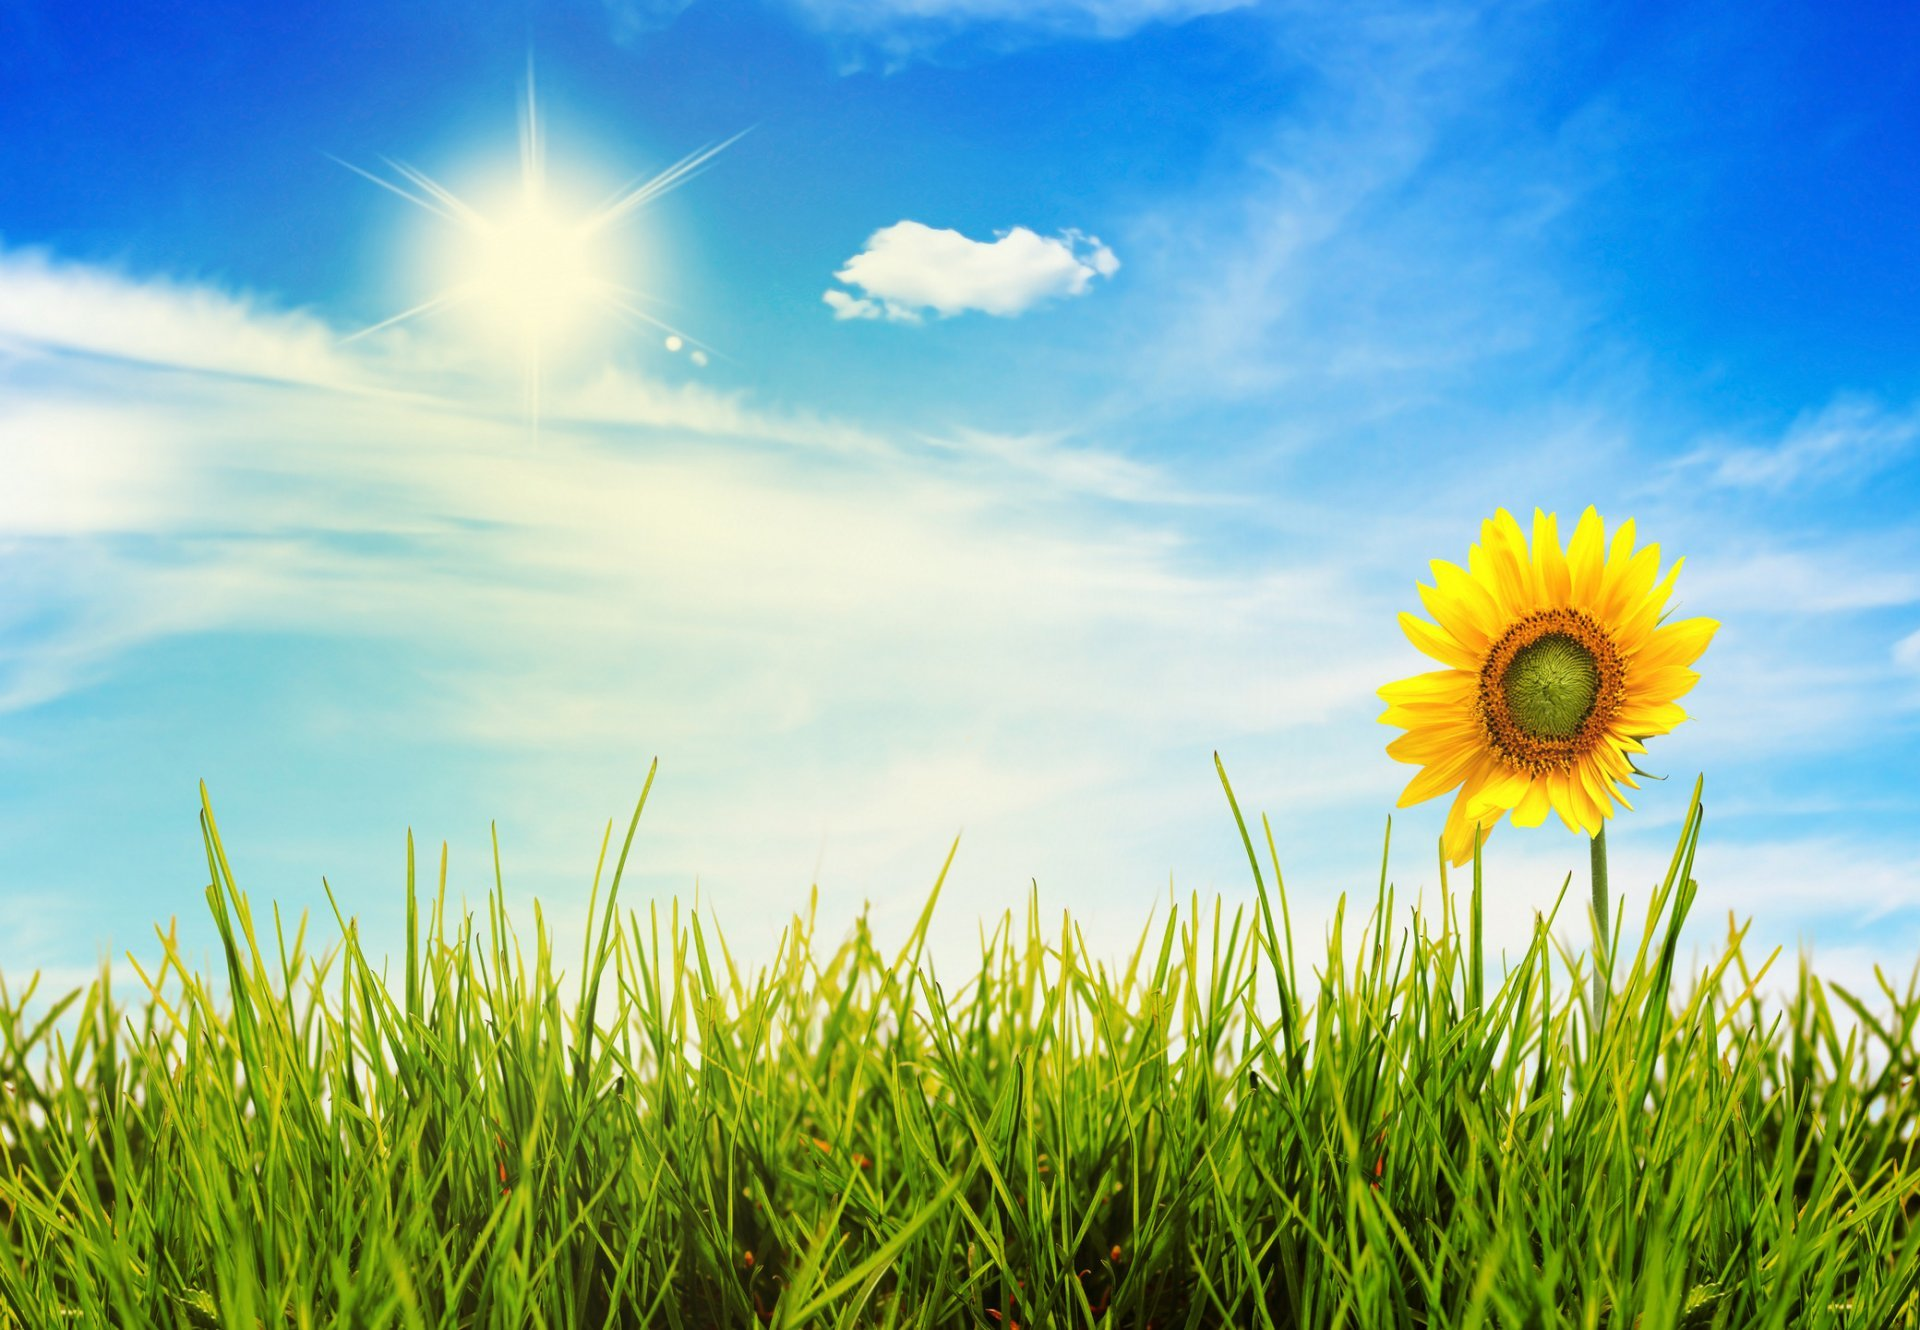 nature flower landscape grass sky sun light HD wallpaper